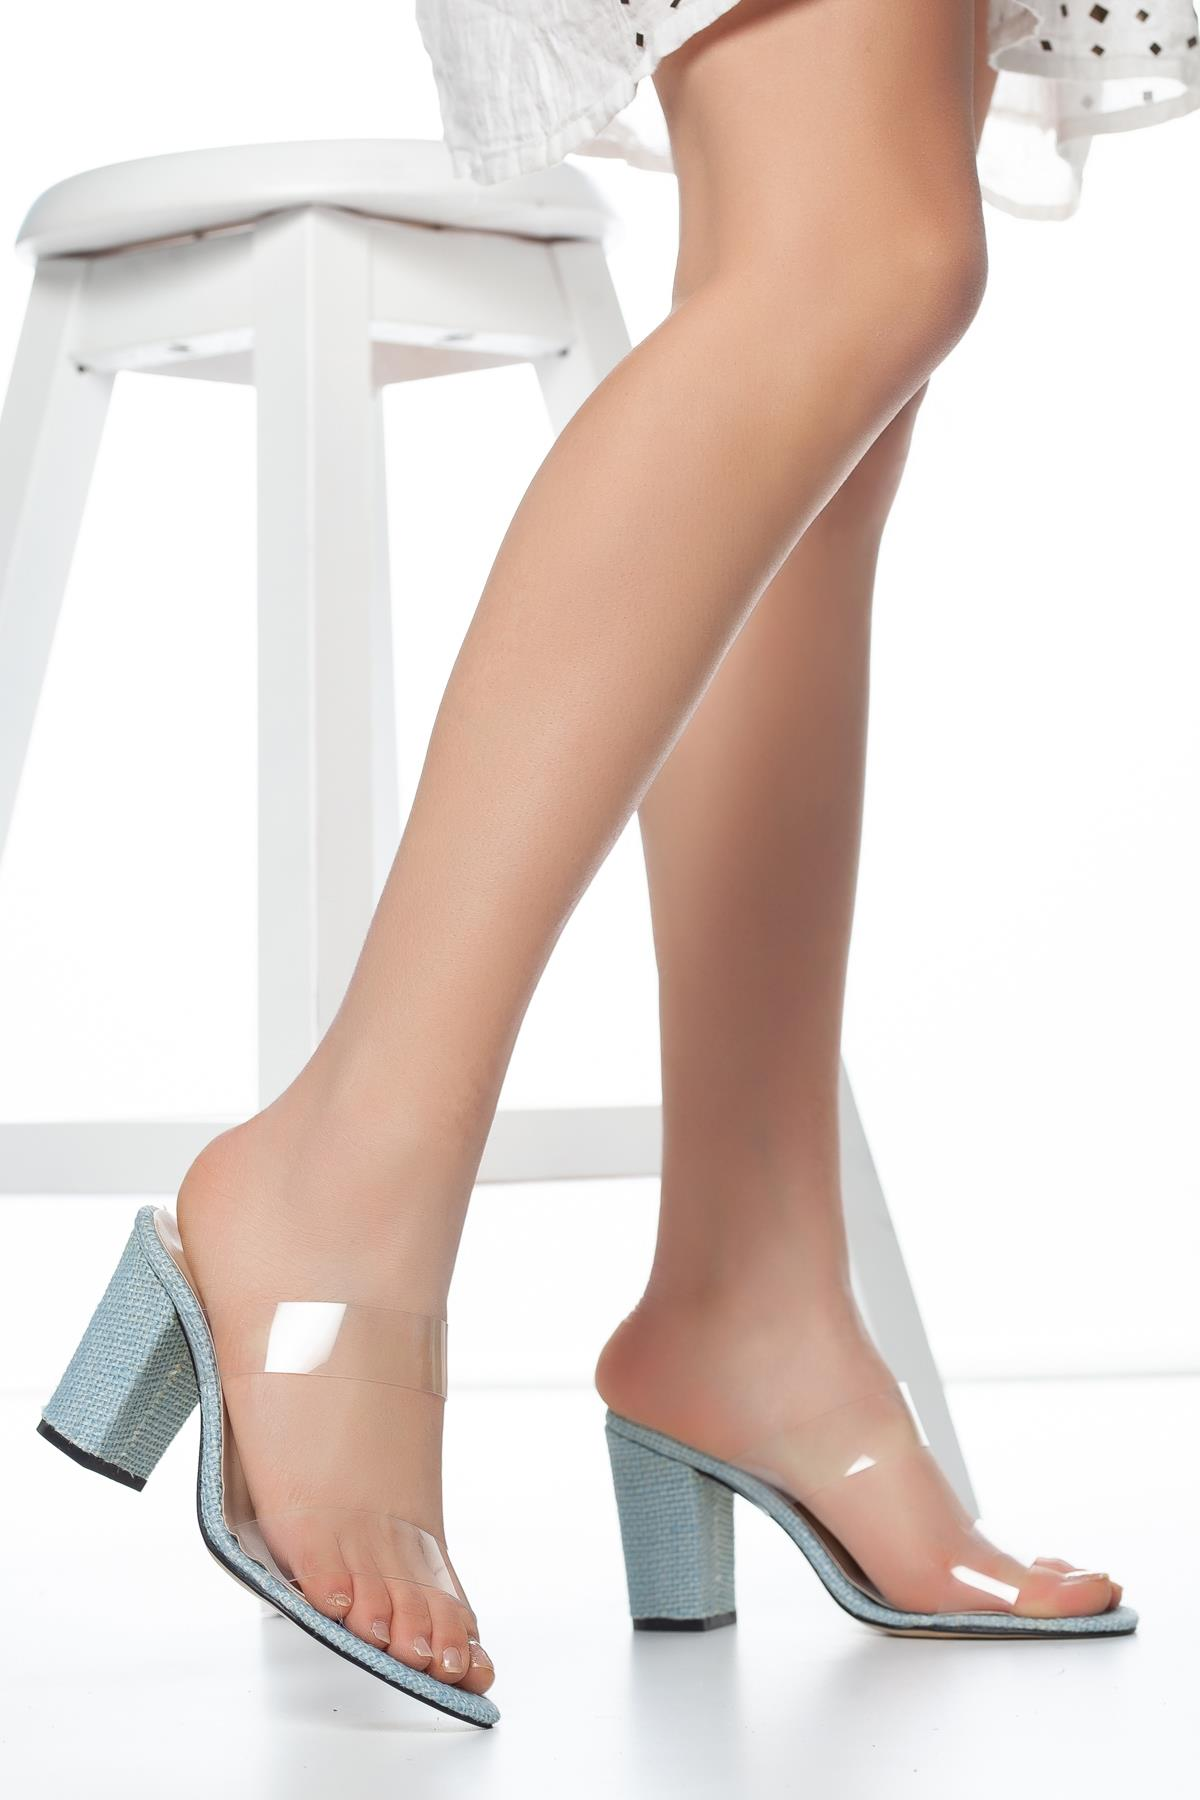 Women's Transparent Band Heeled Slippers